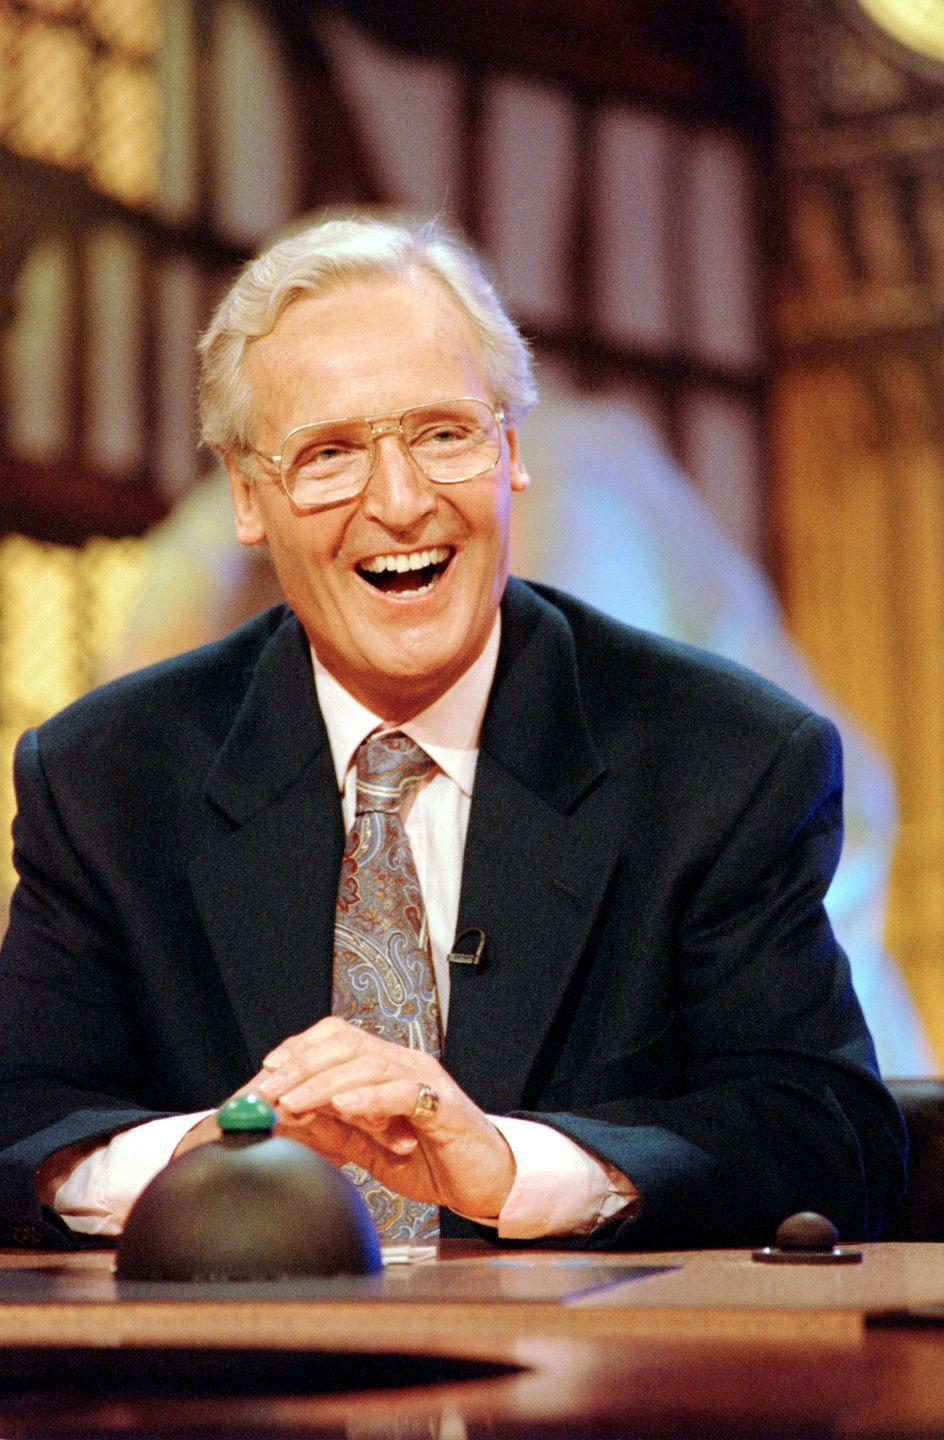 "<p>""Oh no. Nicholas Parsons gone? He ruled Just a Minute for Just a Lifetime. A stunning achievement: never scripted, always immaculate. From comedian's sidekick to great institution, via Sale of the Century & much more. Unrivalled continuity, professionalism & commitment. Farewell x"" – Stephen Fry</p><p>""The sound of the final whistle. Nicholas Parsons was truly the kindest and most generous person I've ever worked with. His continued delight at being a part of show business should be an inspiration to us all! Huge love to his wife Annie and his whole family. #ripnicholasparsons"" – Graham Norton</p><p>""Without hesitation, deviation or repetition I'd like to say that Nicholas Parsons was a broadcasting giant who proved that the straight man could be the real star of comedy. Will be hugely missed by all who work at & love @BBCRadio4"" – Nick Robinson</p>"